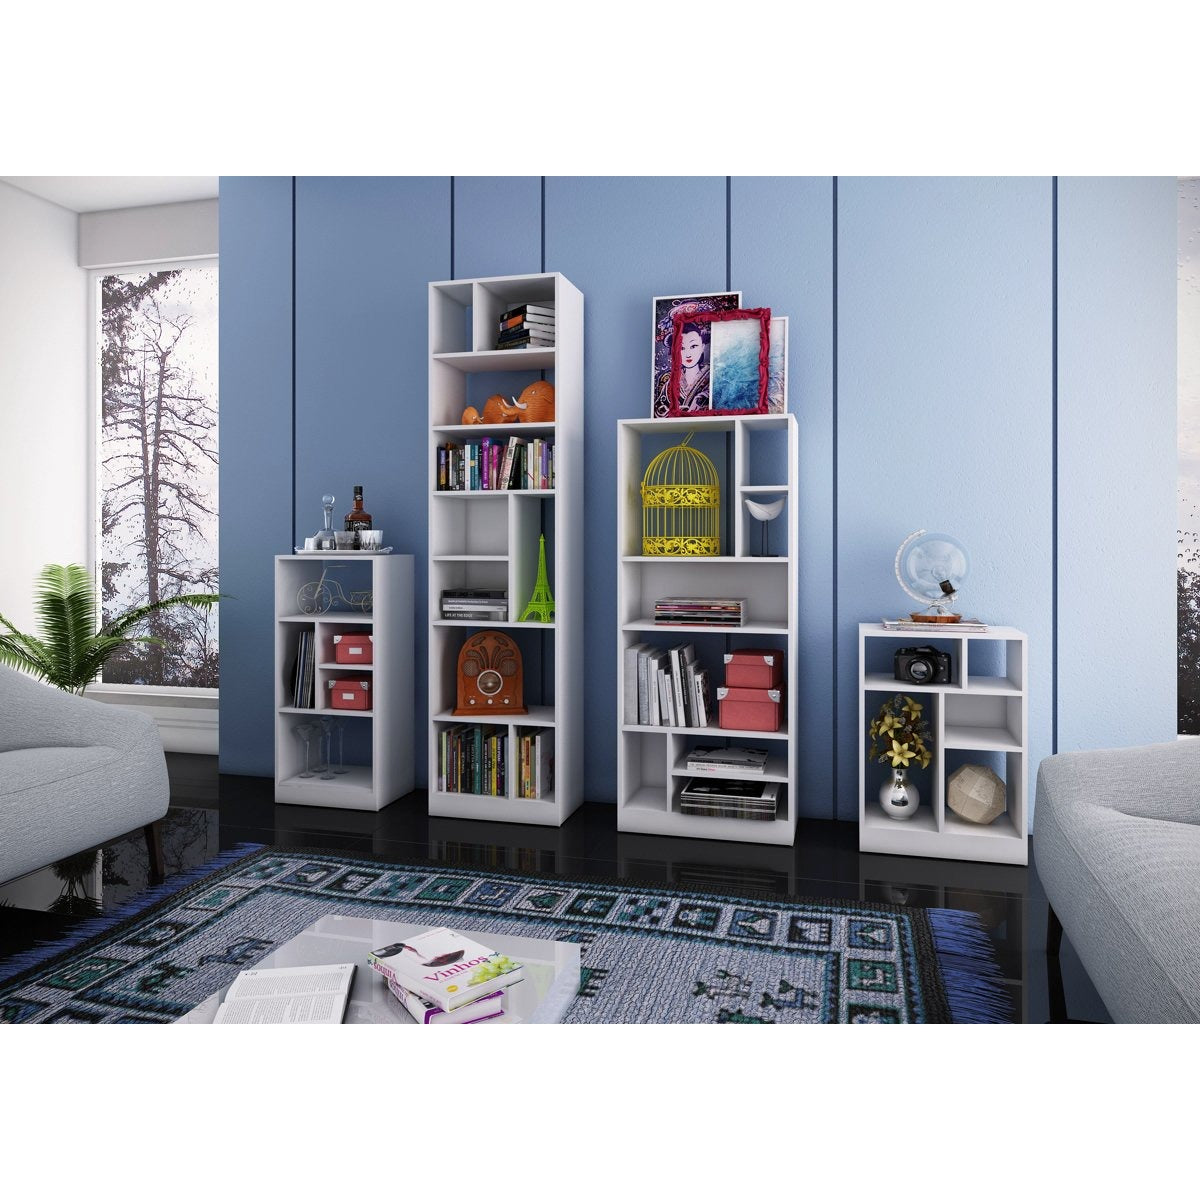 Manhattan Comfort 4 Piece Valenca Bookcase Set in White-Minimal & Modern